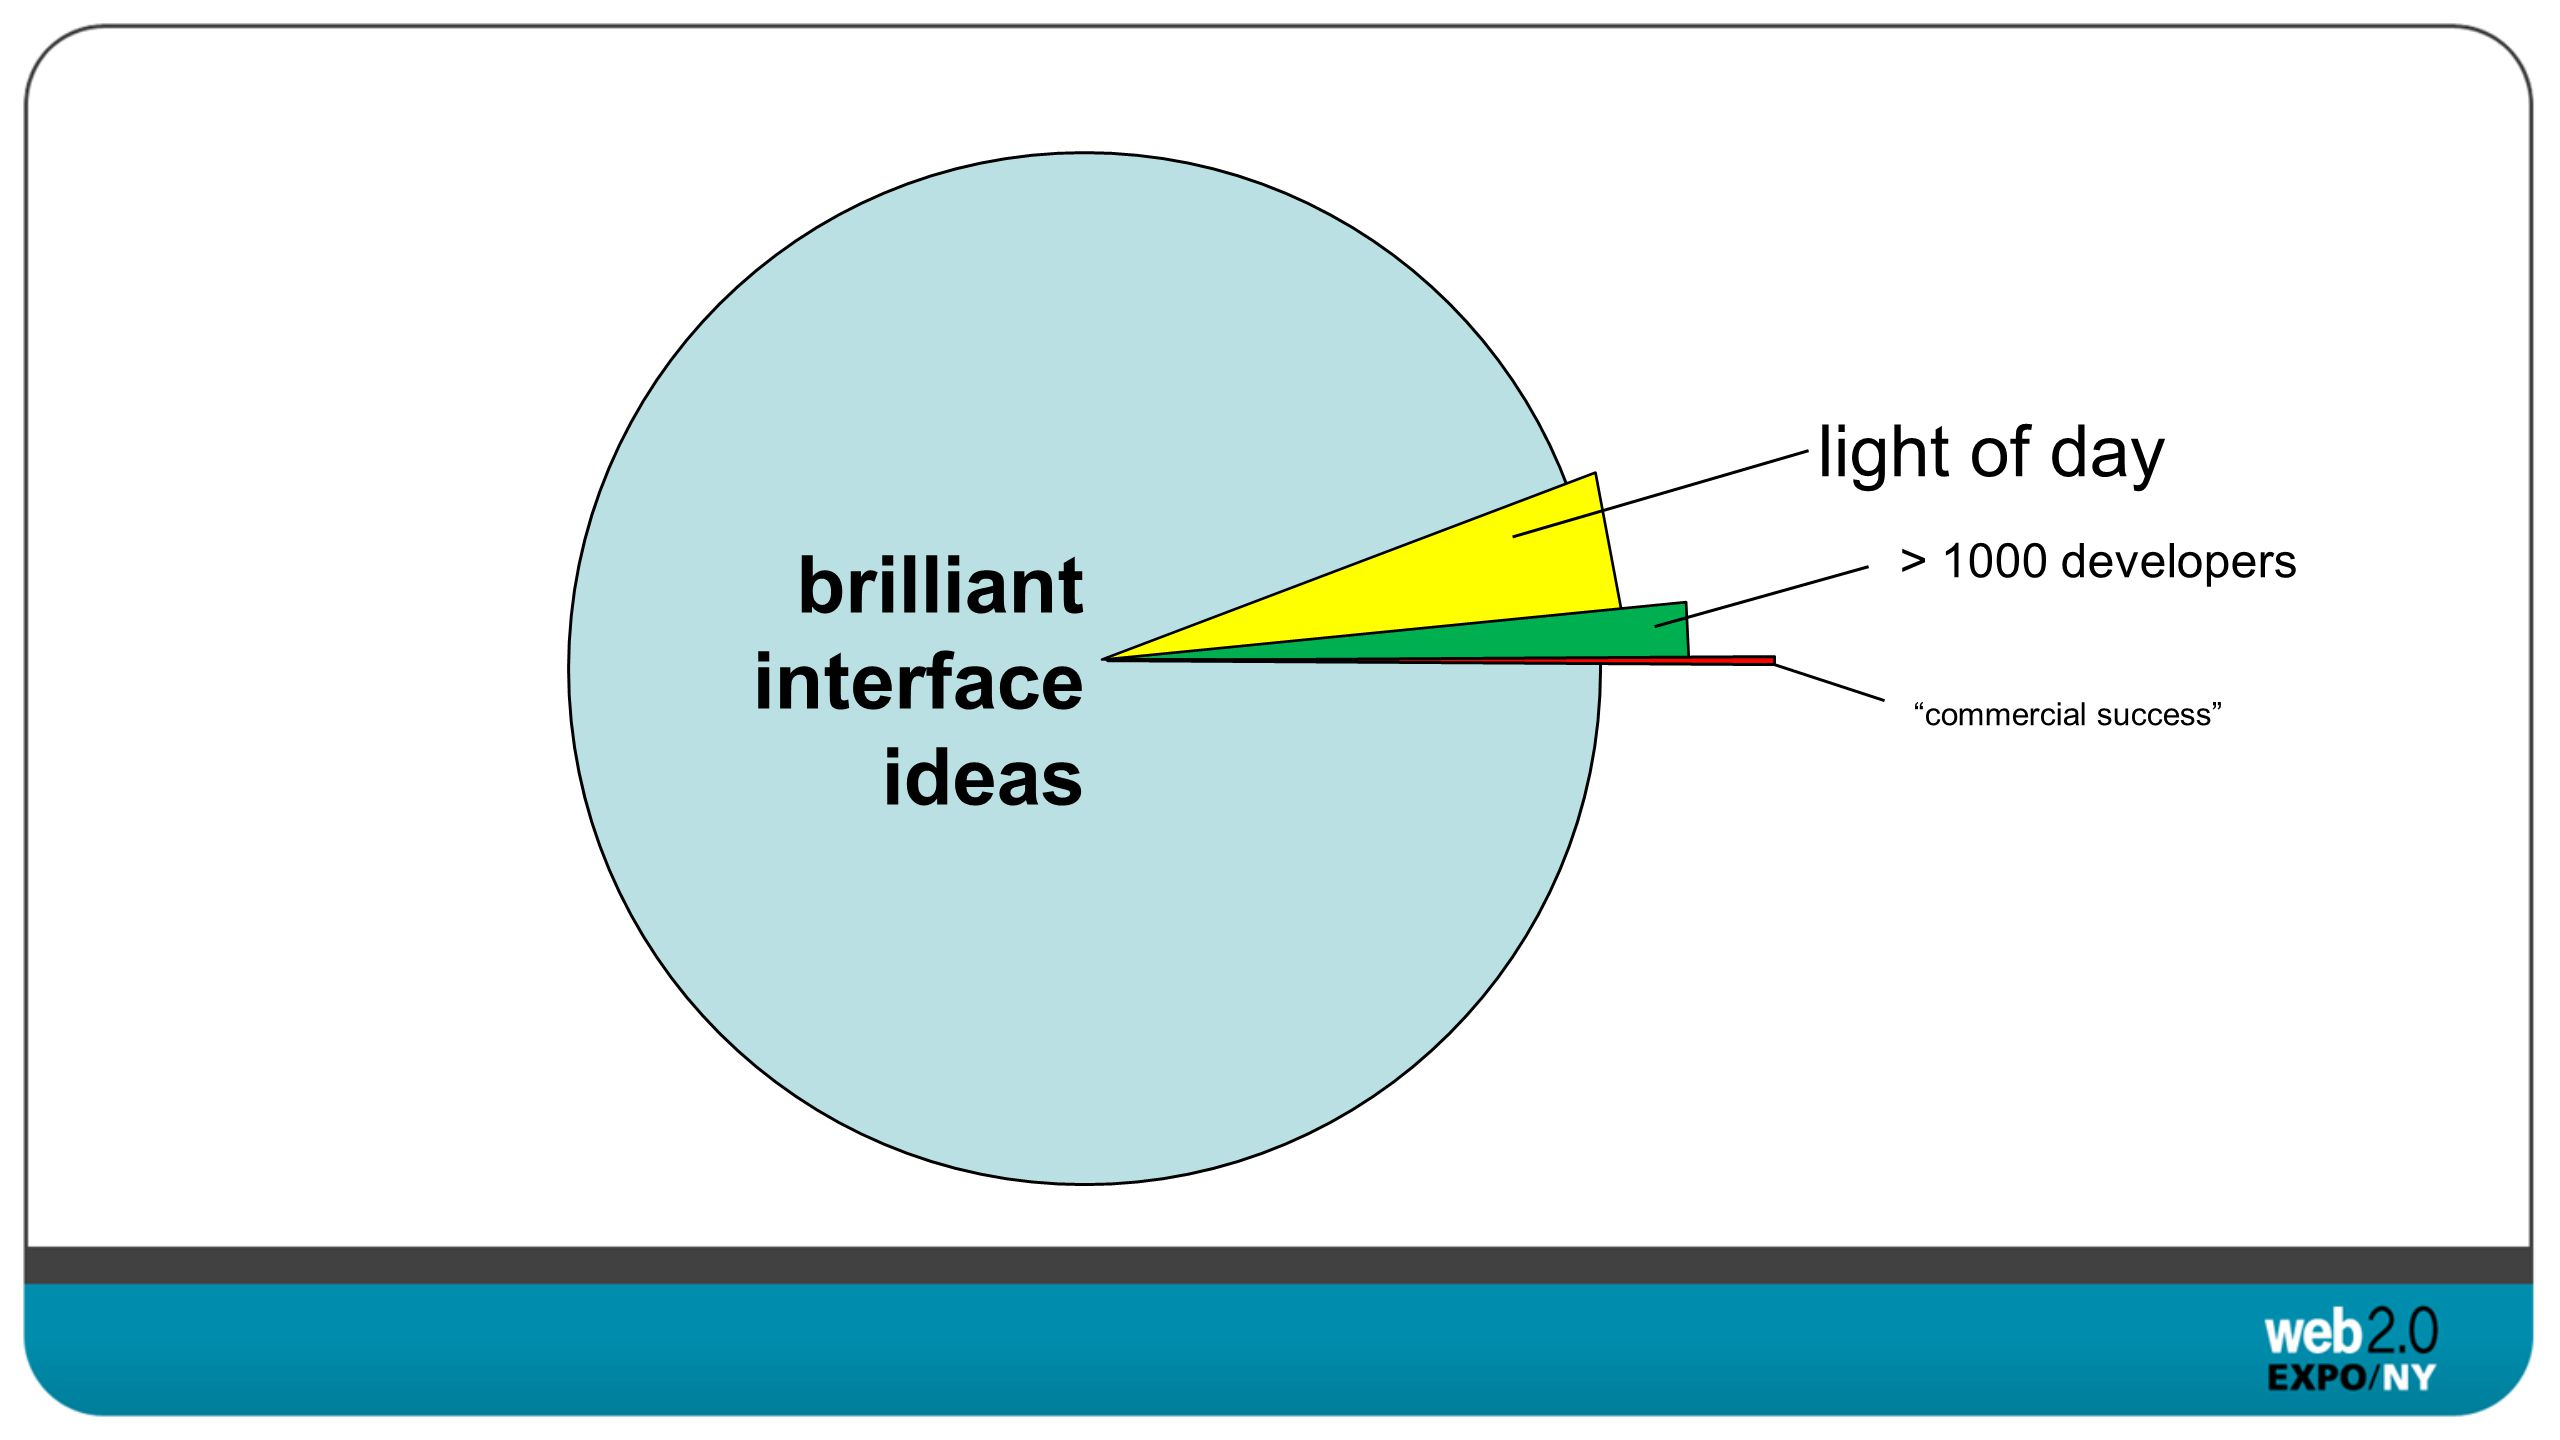 light of day brilliant interface ideas > 1000 developers commercial success